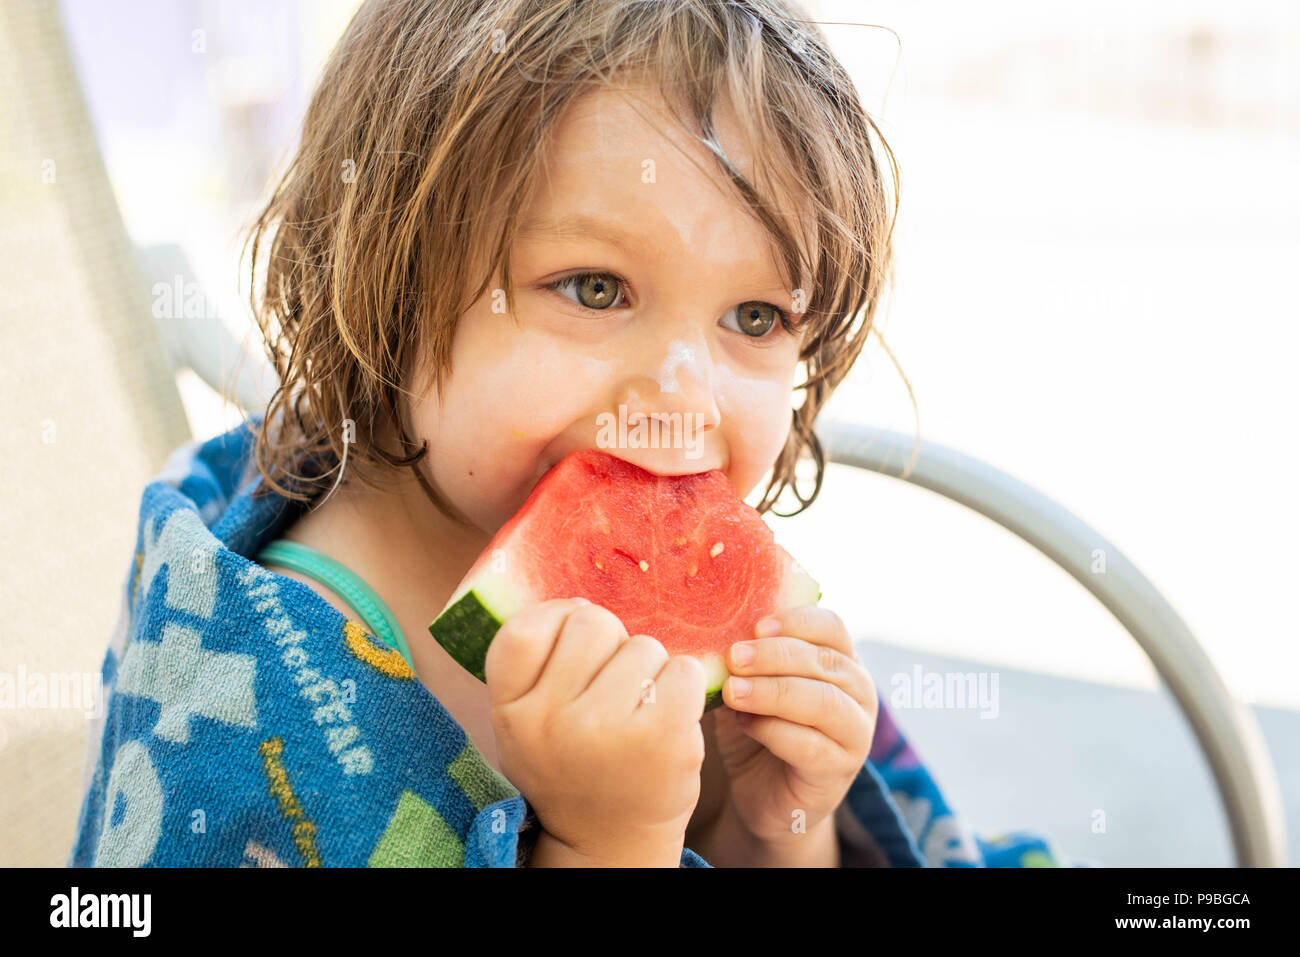 A young girl with sunblock on her head eats watermelon at a waterpark in Pennsylvania, United States. - Stock Image